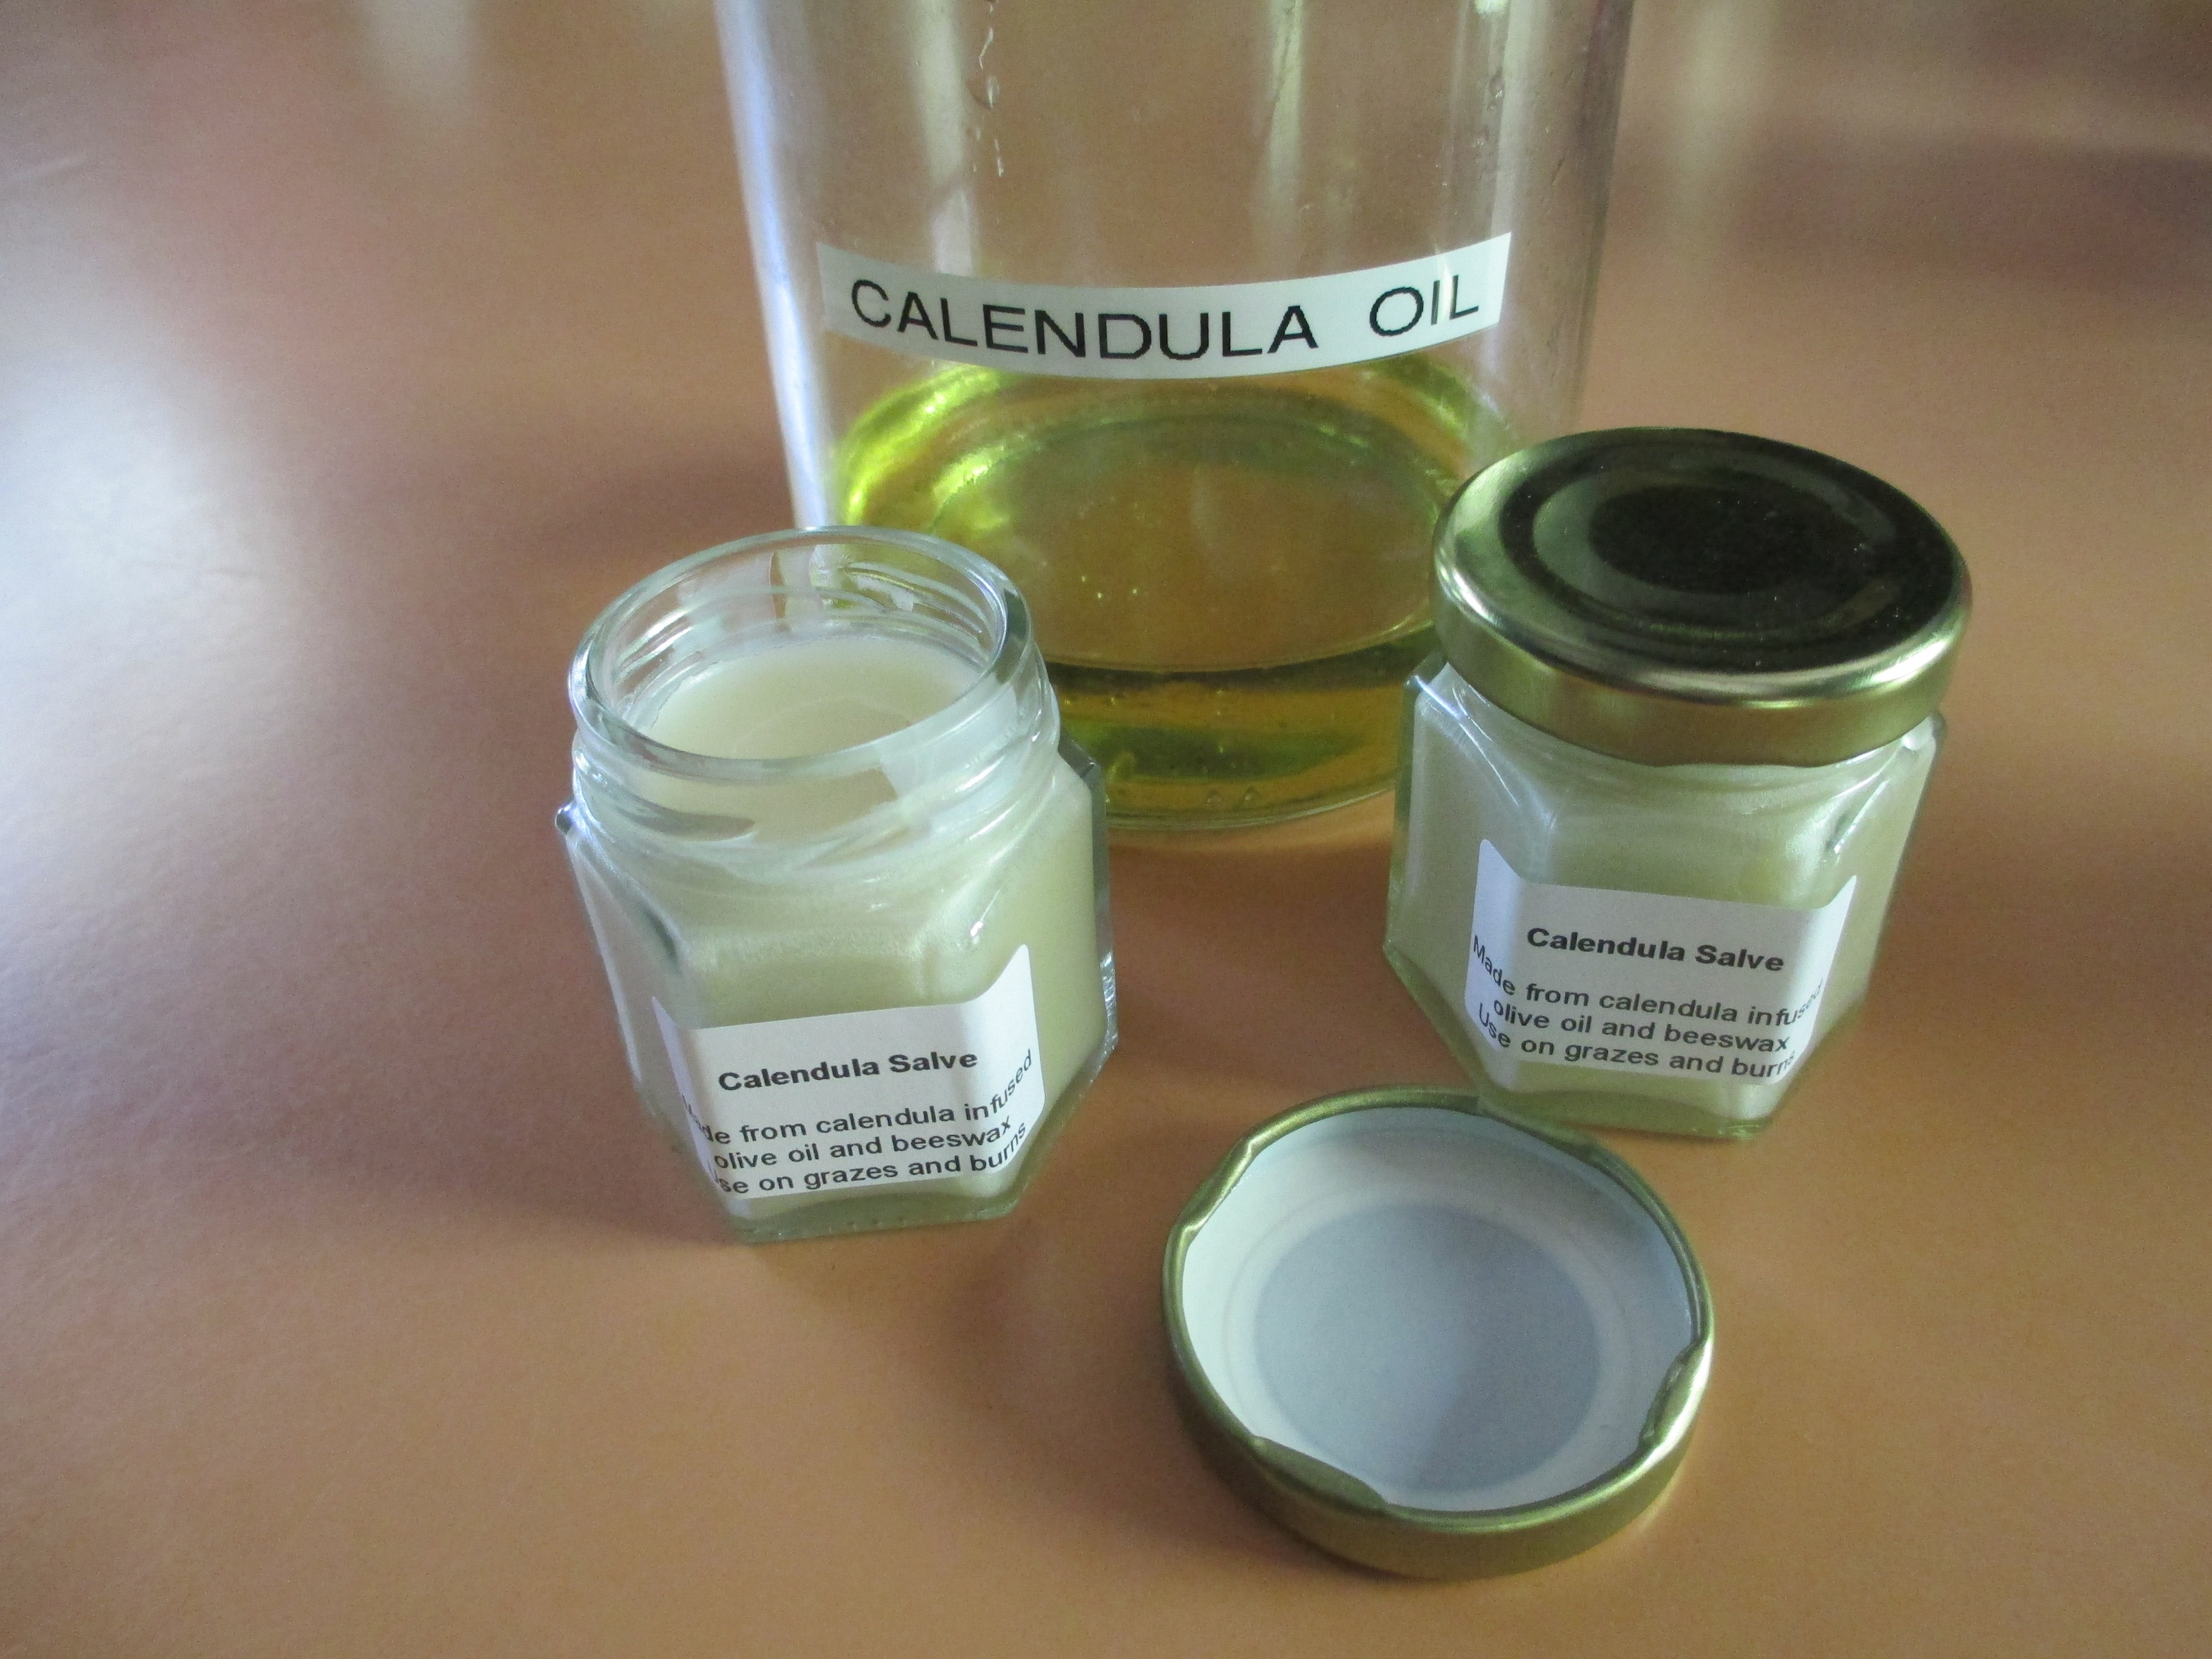 Calendula infused oil and salve